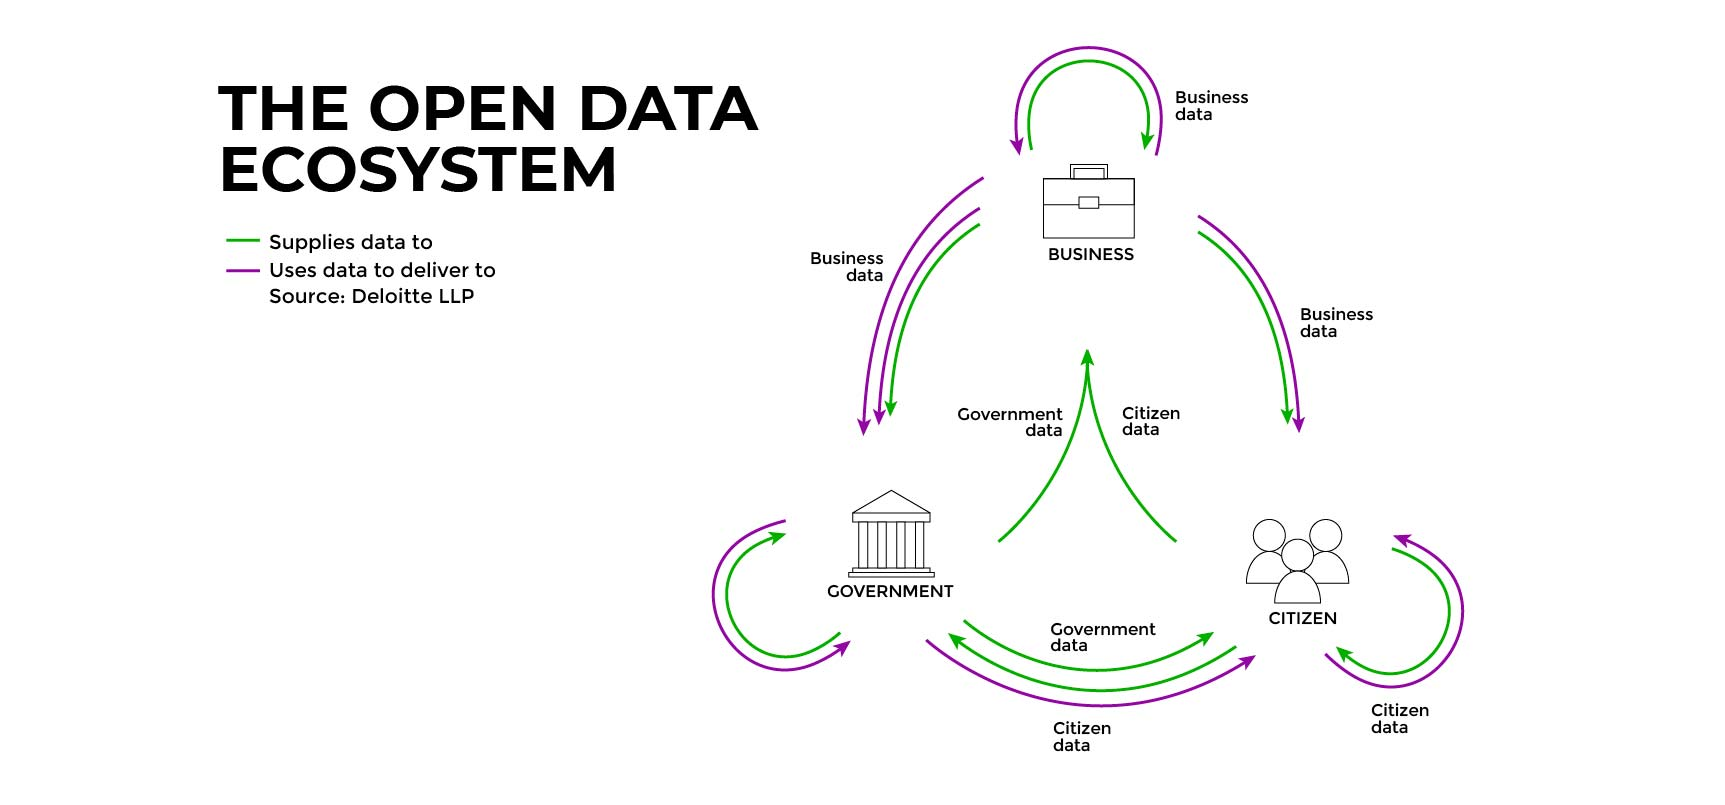 The open data ecosystem